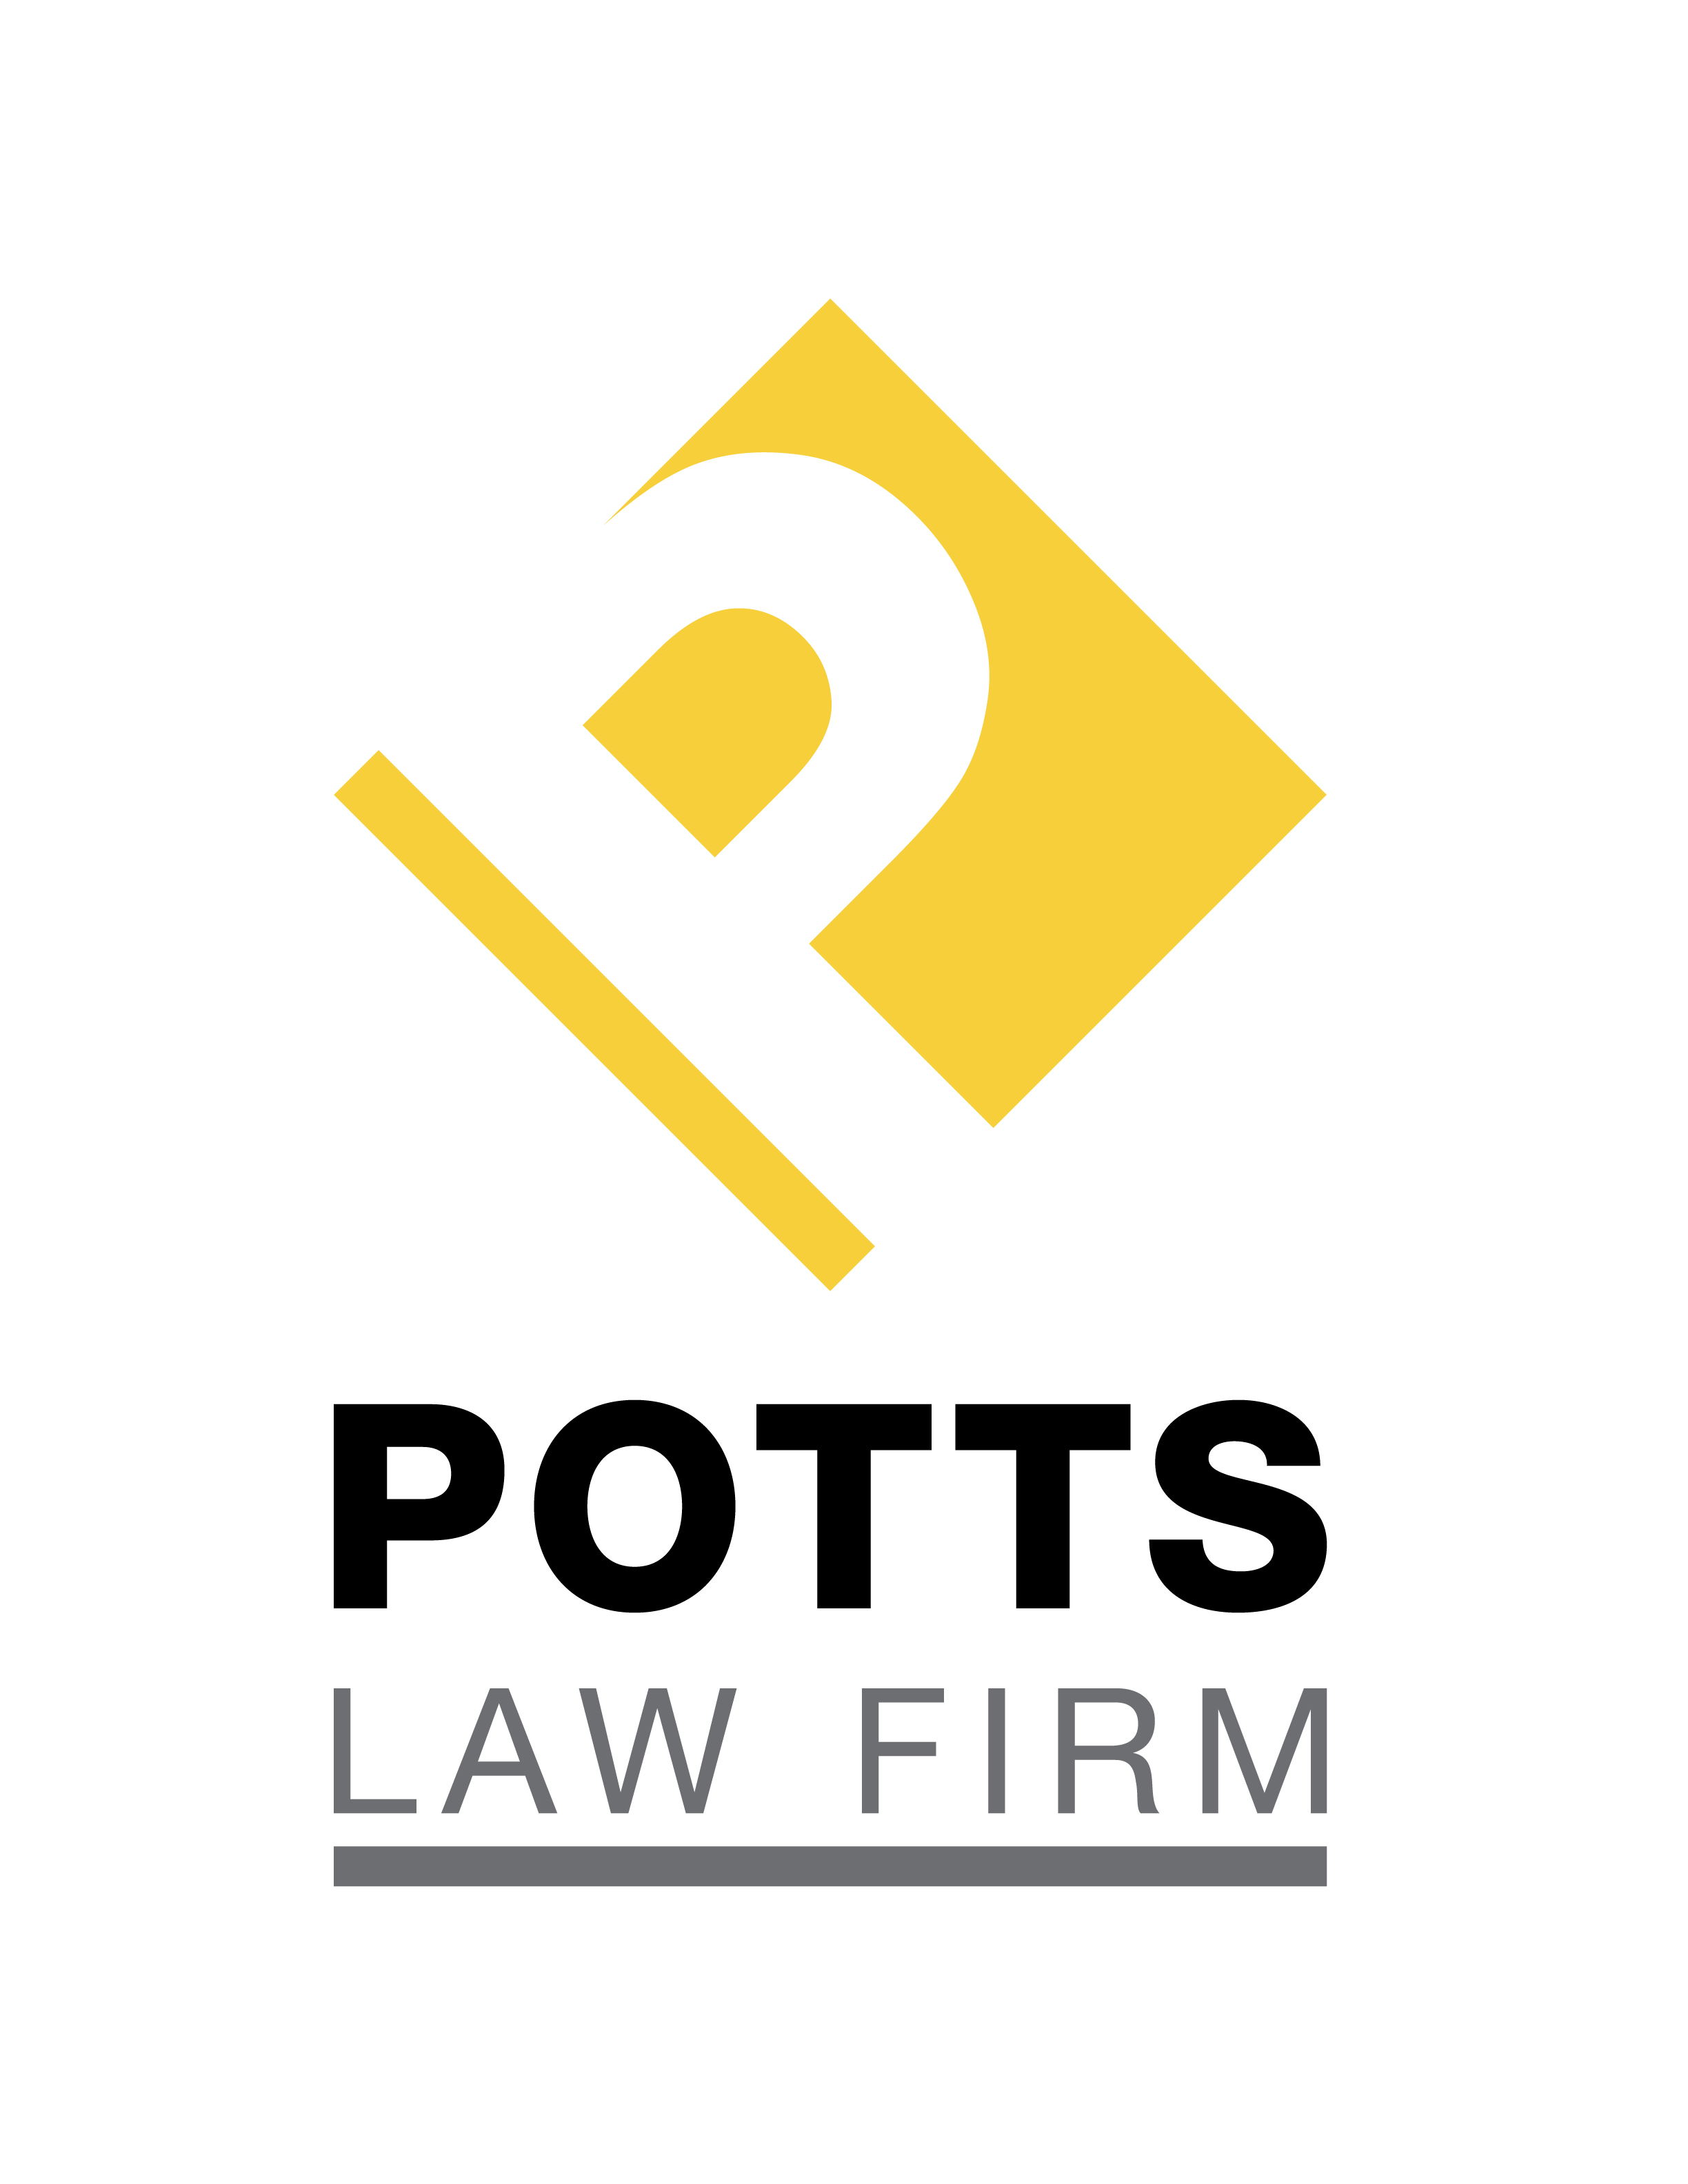 Potts Law Firm Profile Picture